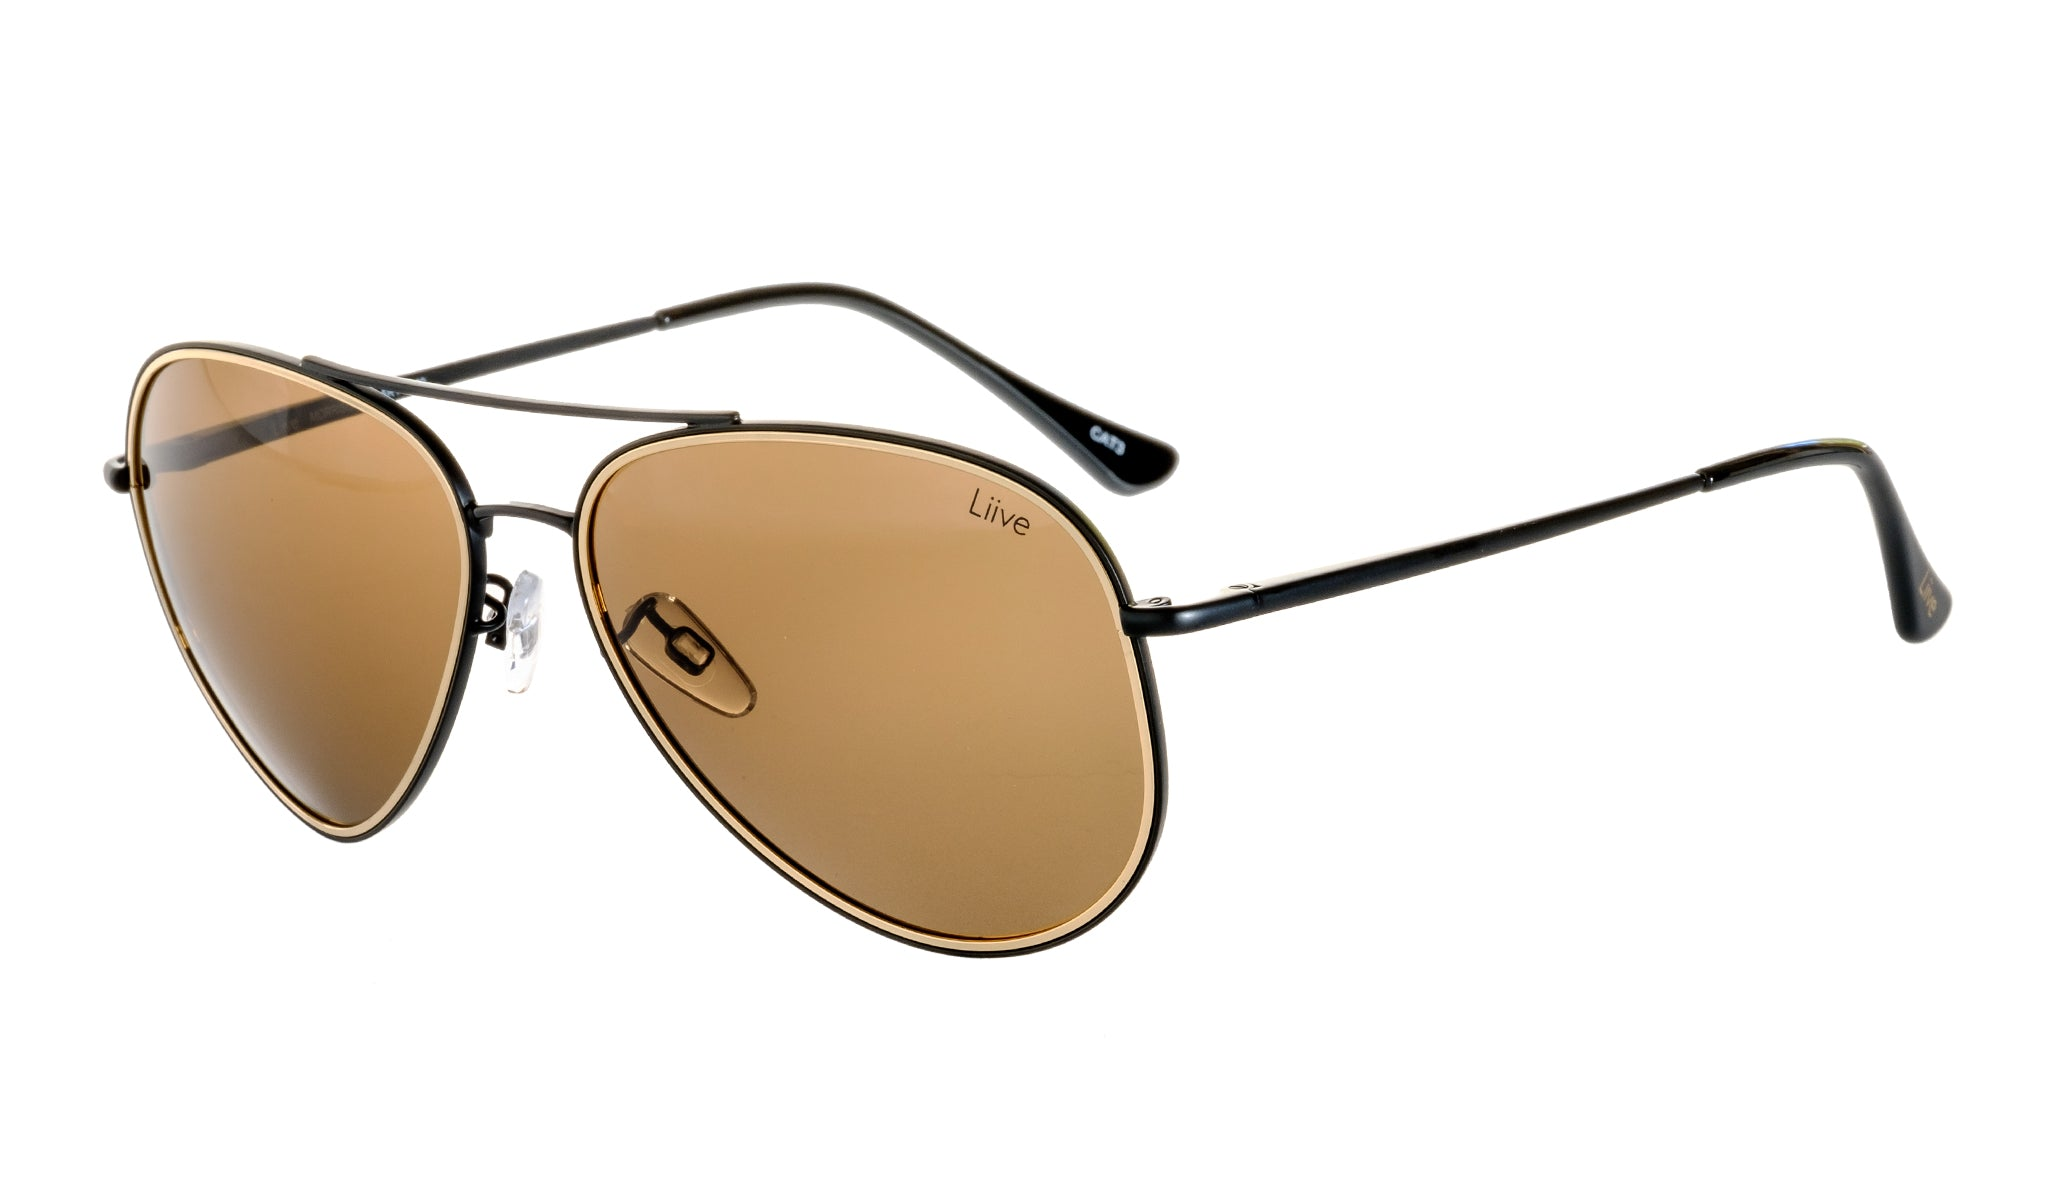 29a0a8246d9 Shop for Womens at Liive Vision  Aviator